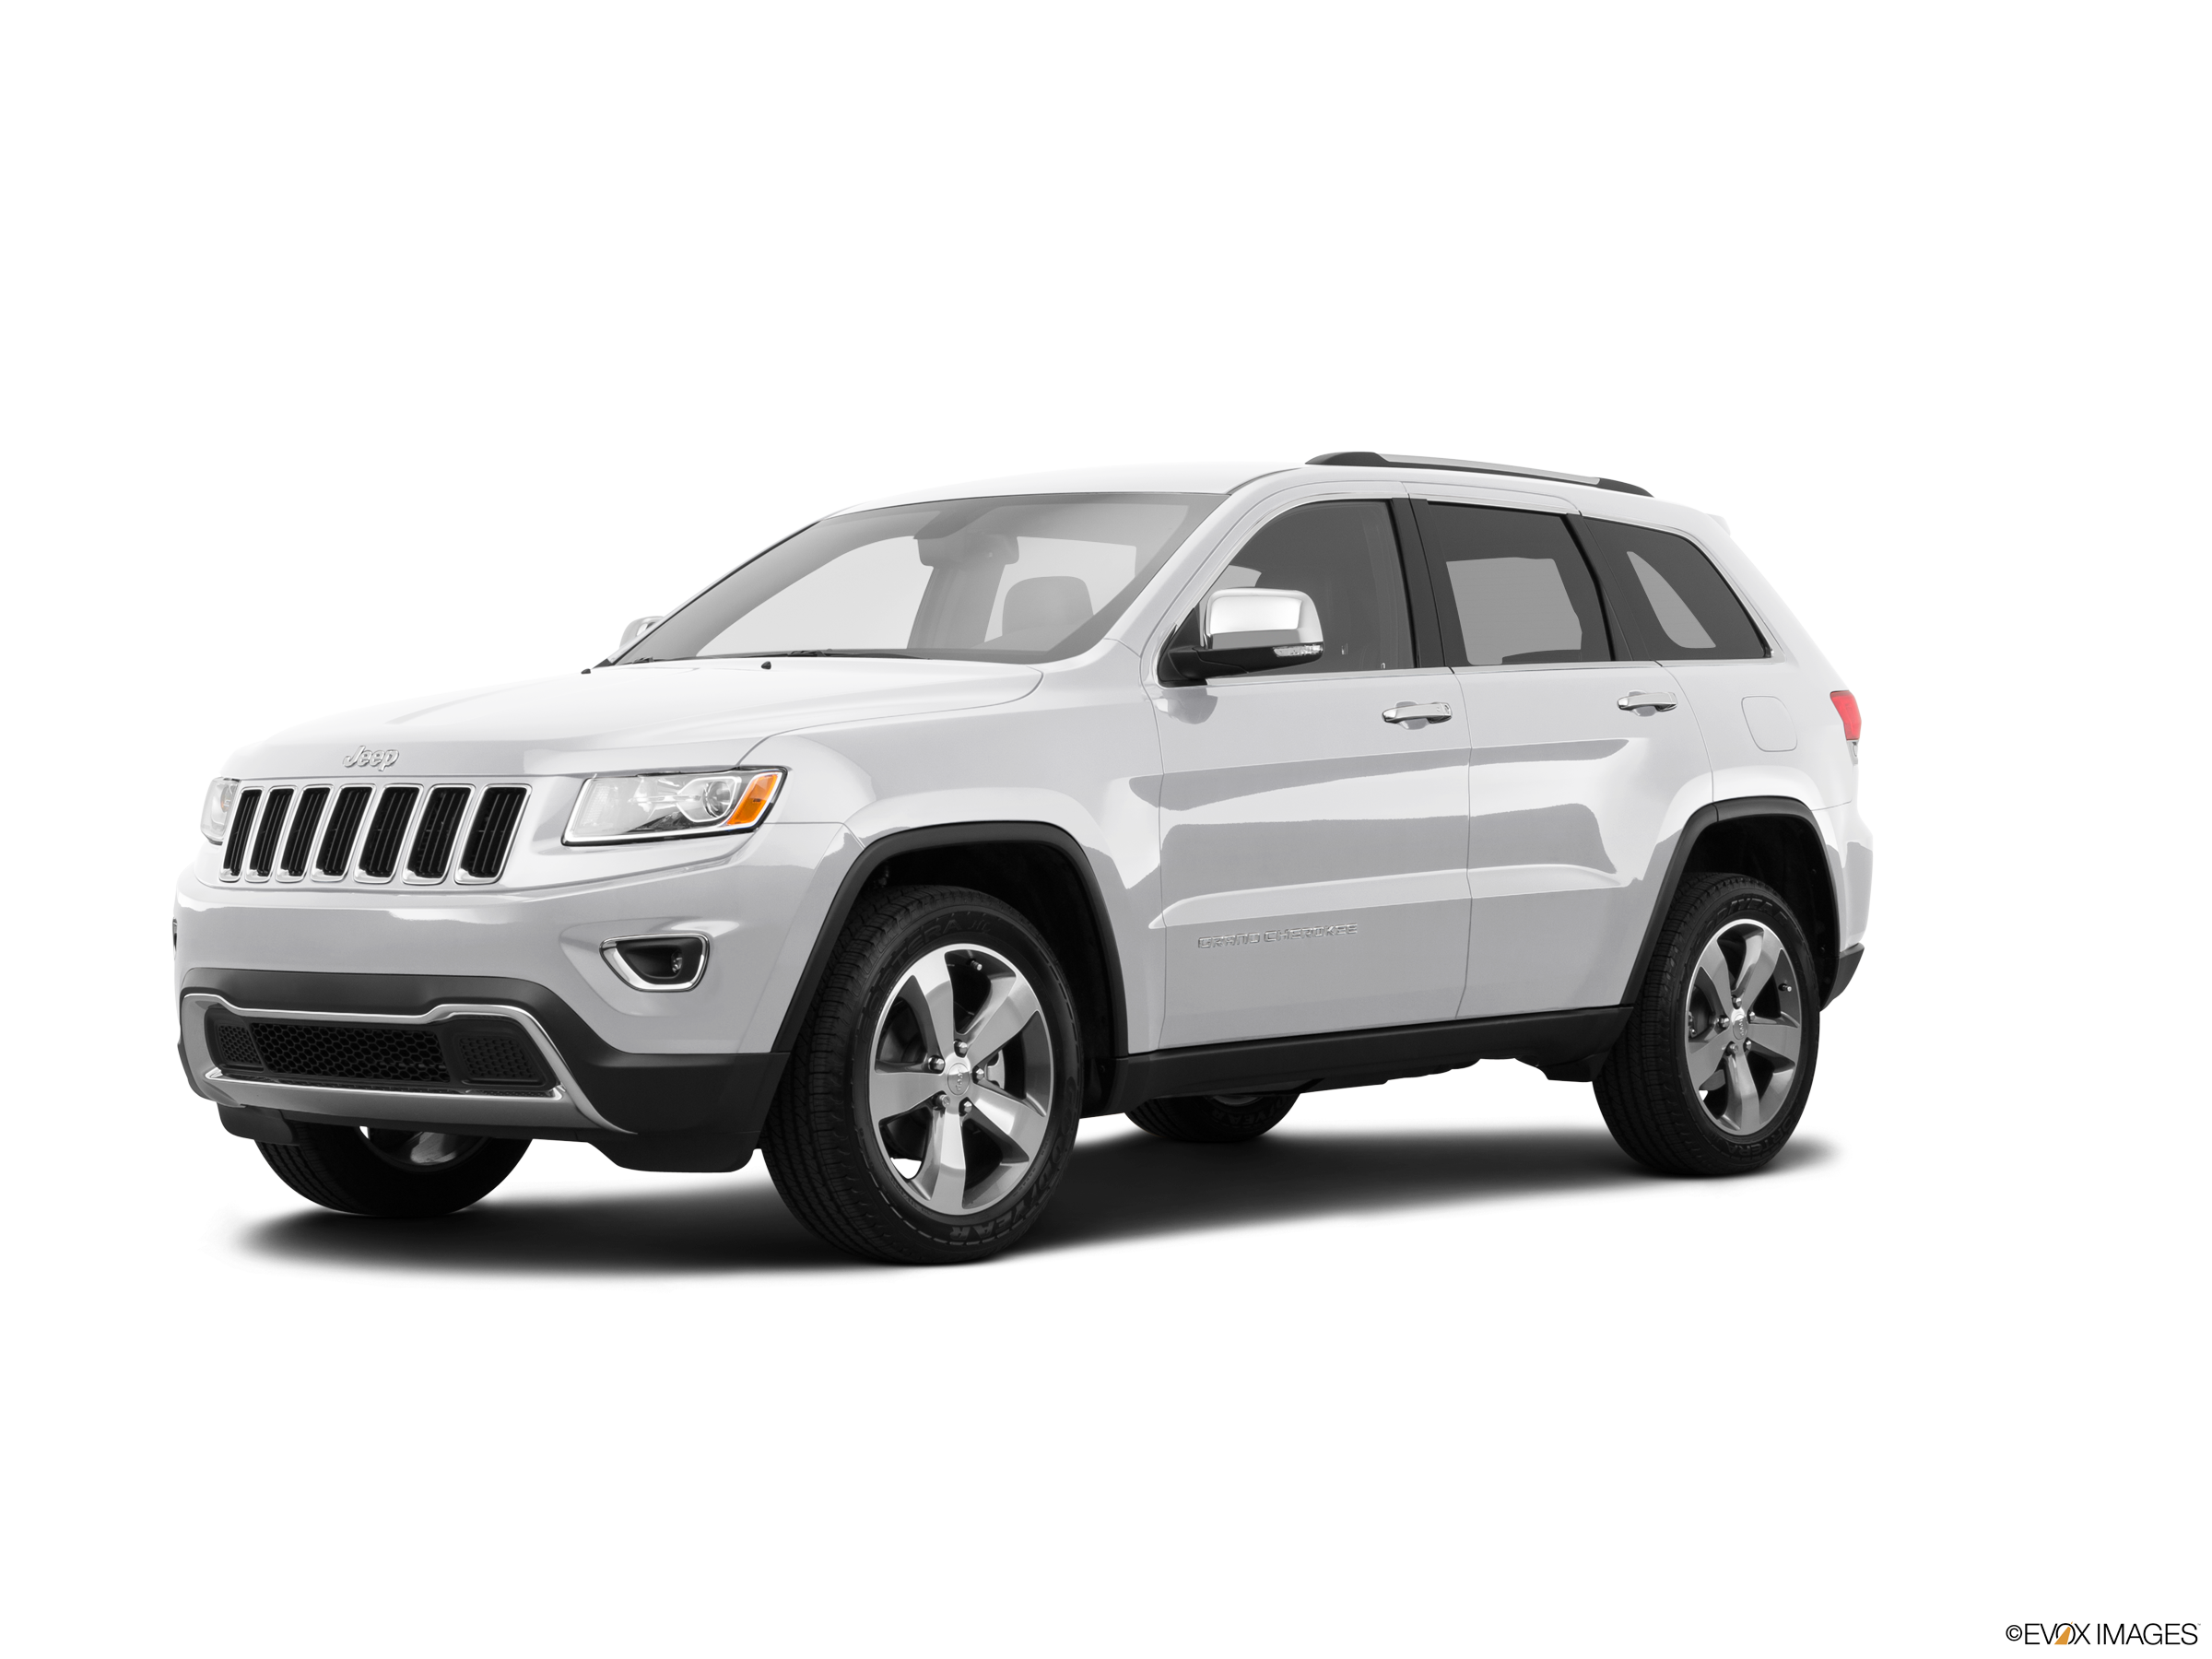 2015 Jeep Grand Cherokee Values Cars For Sale Kelley Blue Book